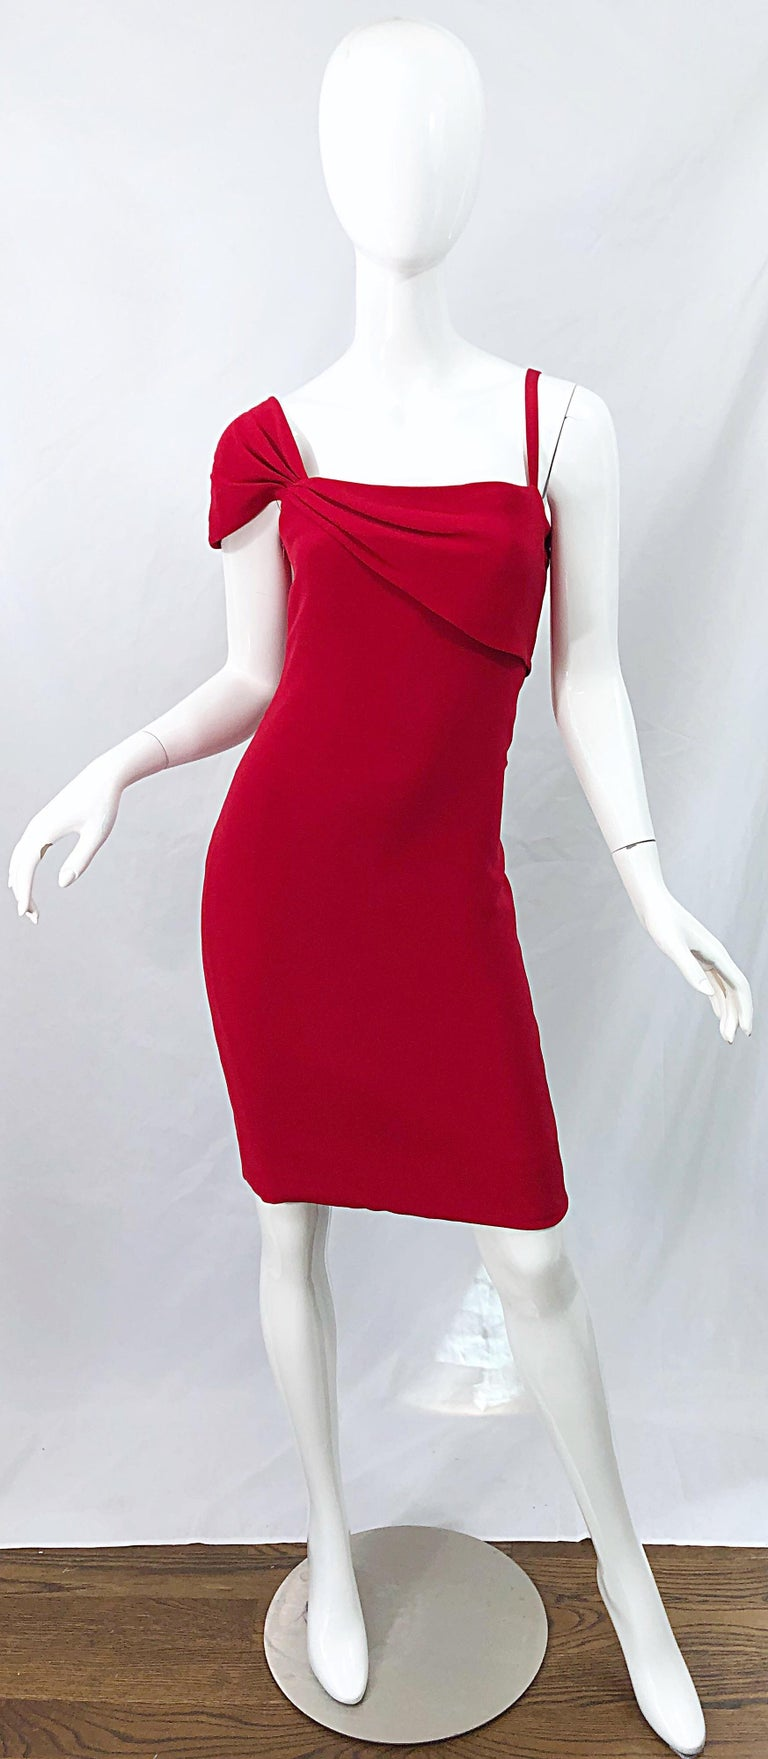 Amazing vintage 90s BILL BLASS for Saks 5th Avenue lipstick red one shoulder silk dress! Features a flattering fit with a spaghetti strap on the left shoulder and a cap sleeve on the right shoulder. Drapes along the front and back bodice. Hidden